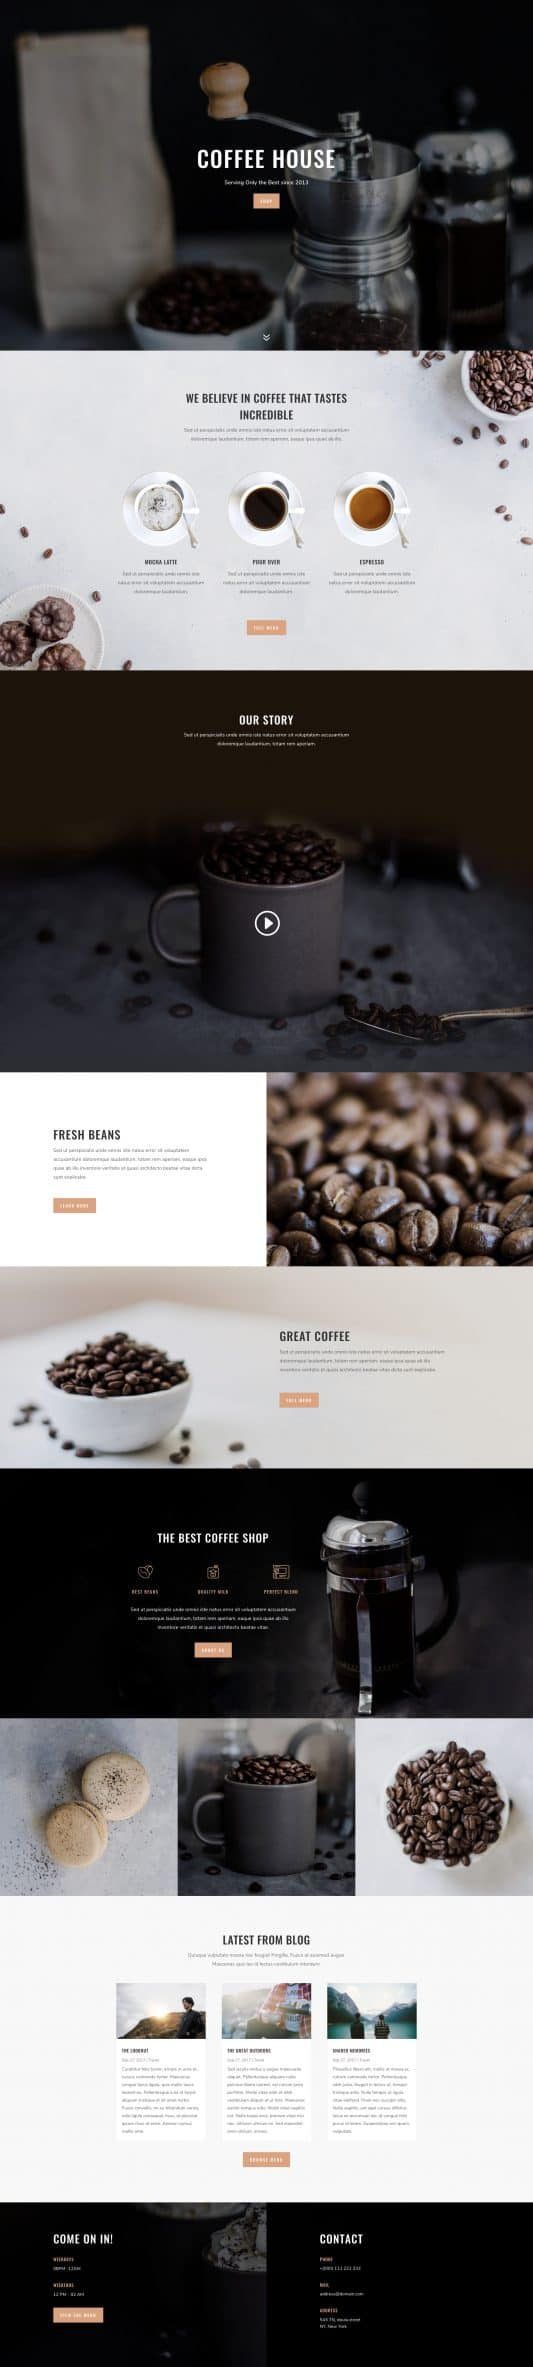 Coffee Shop Web Design 6